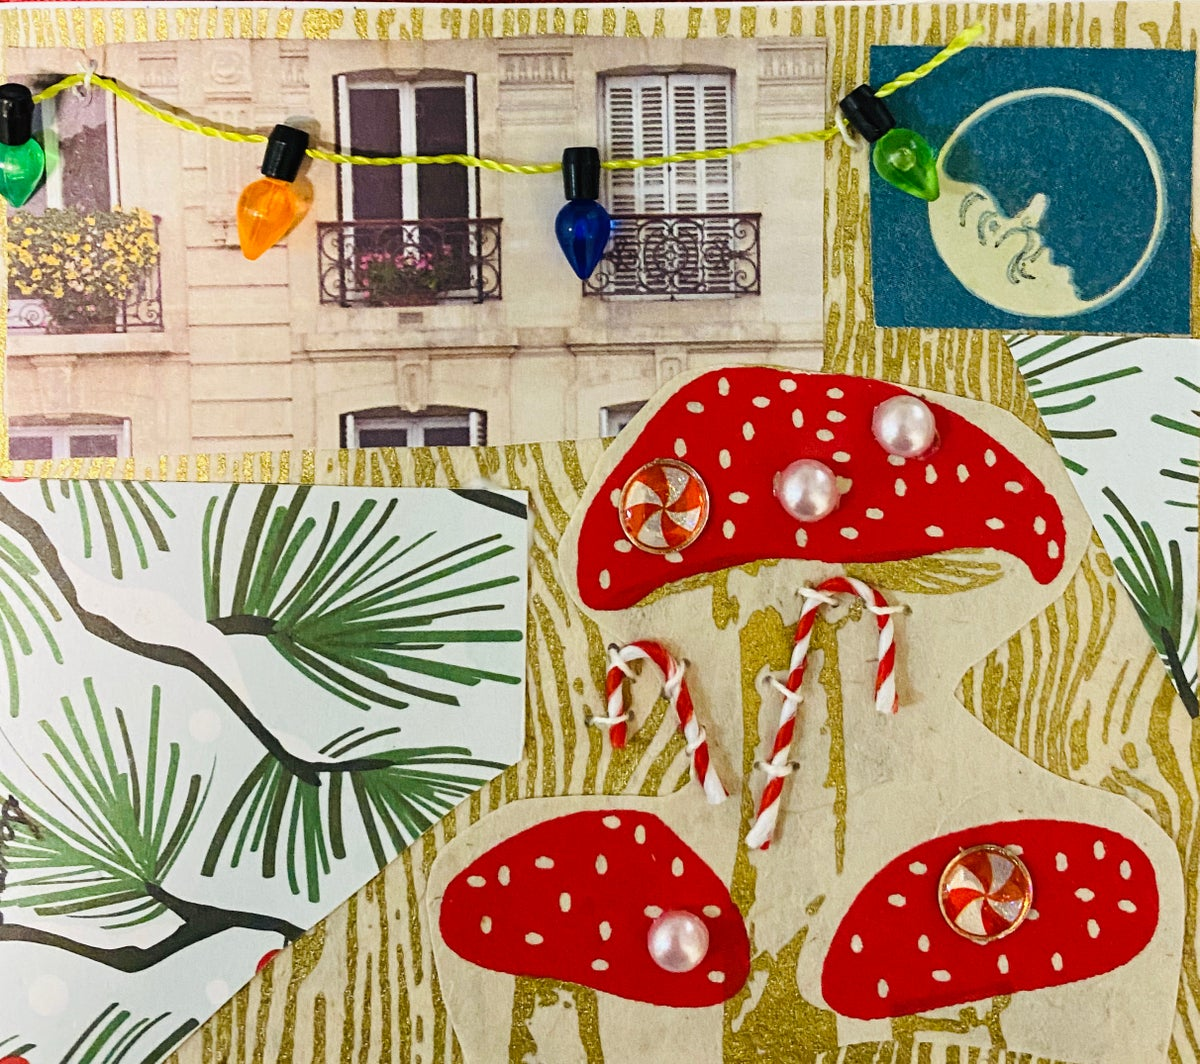 Holiday Mushrooms in the City